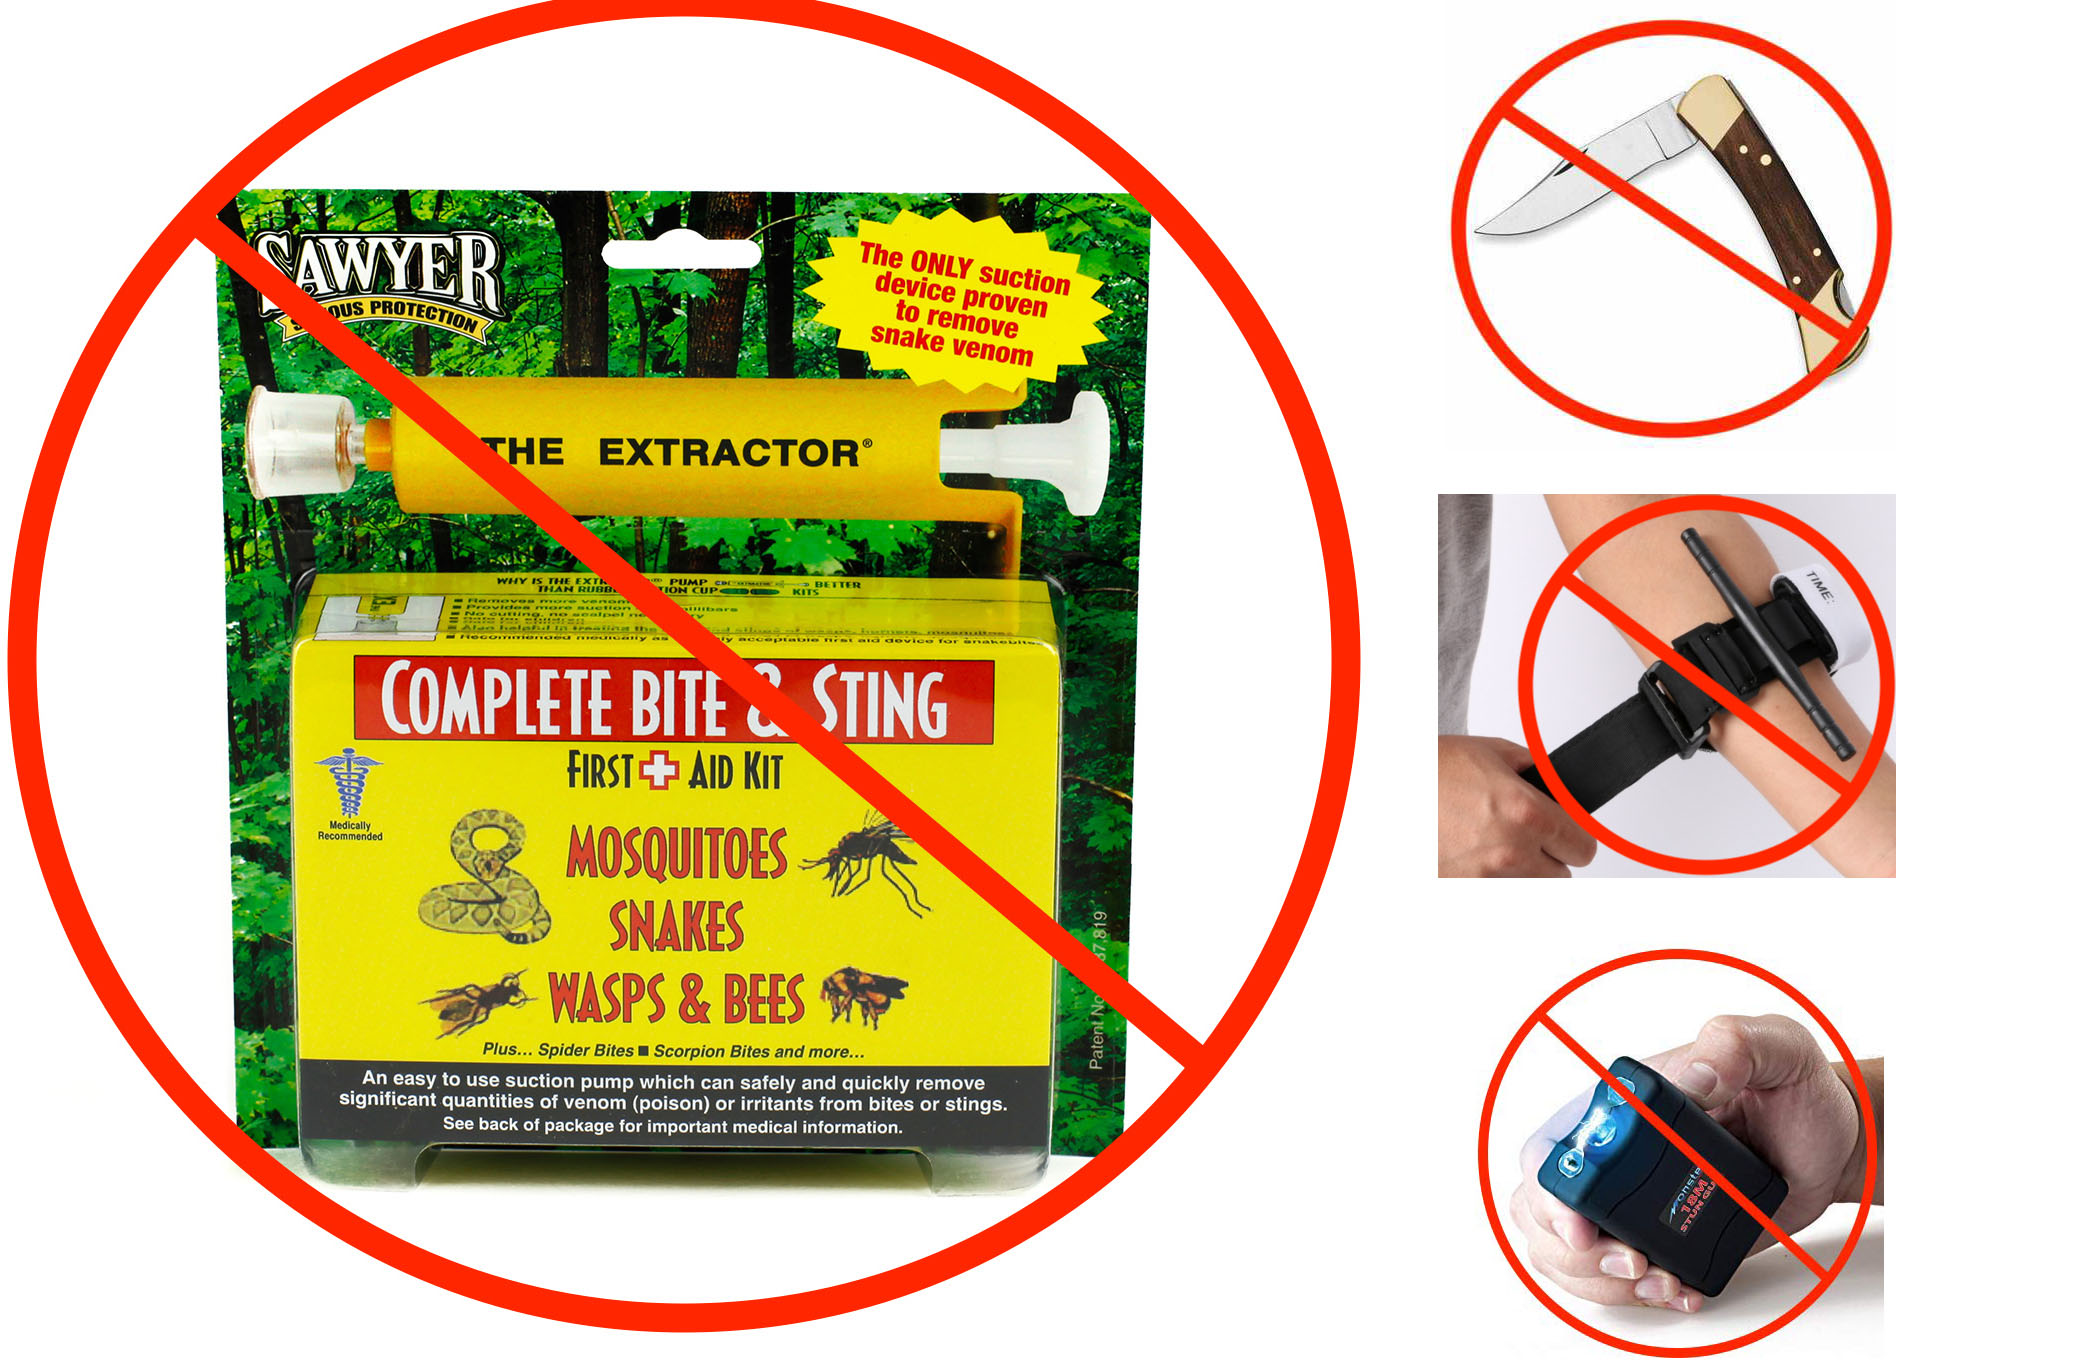 All of these things are bad for snakebites and should be avoided!